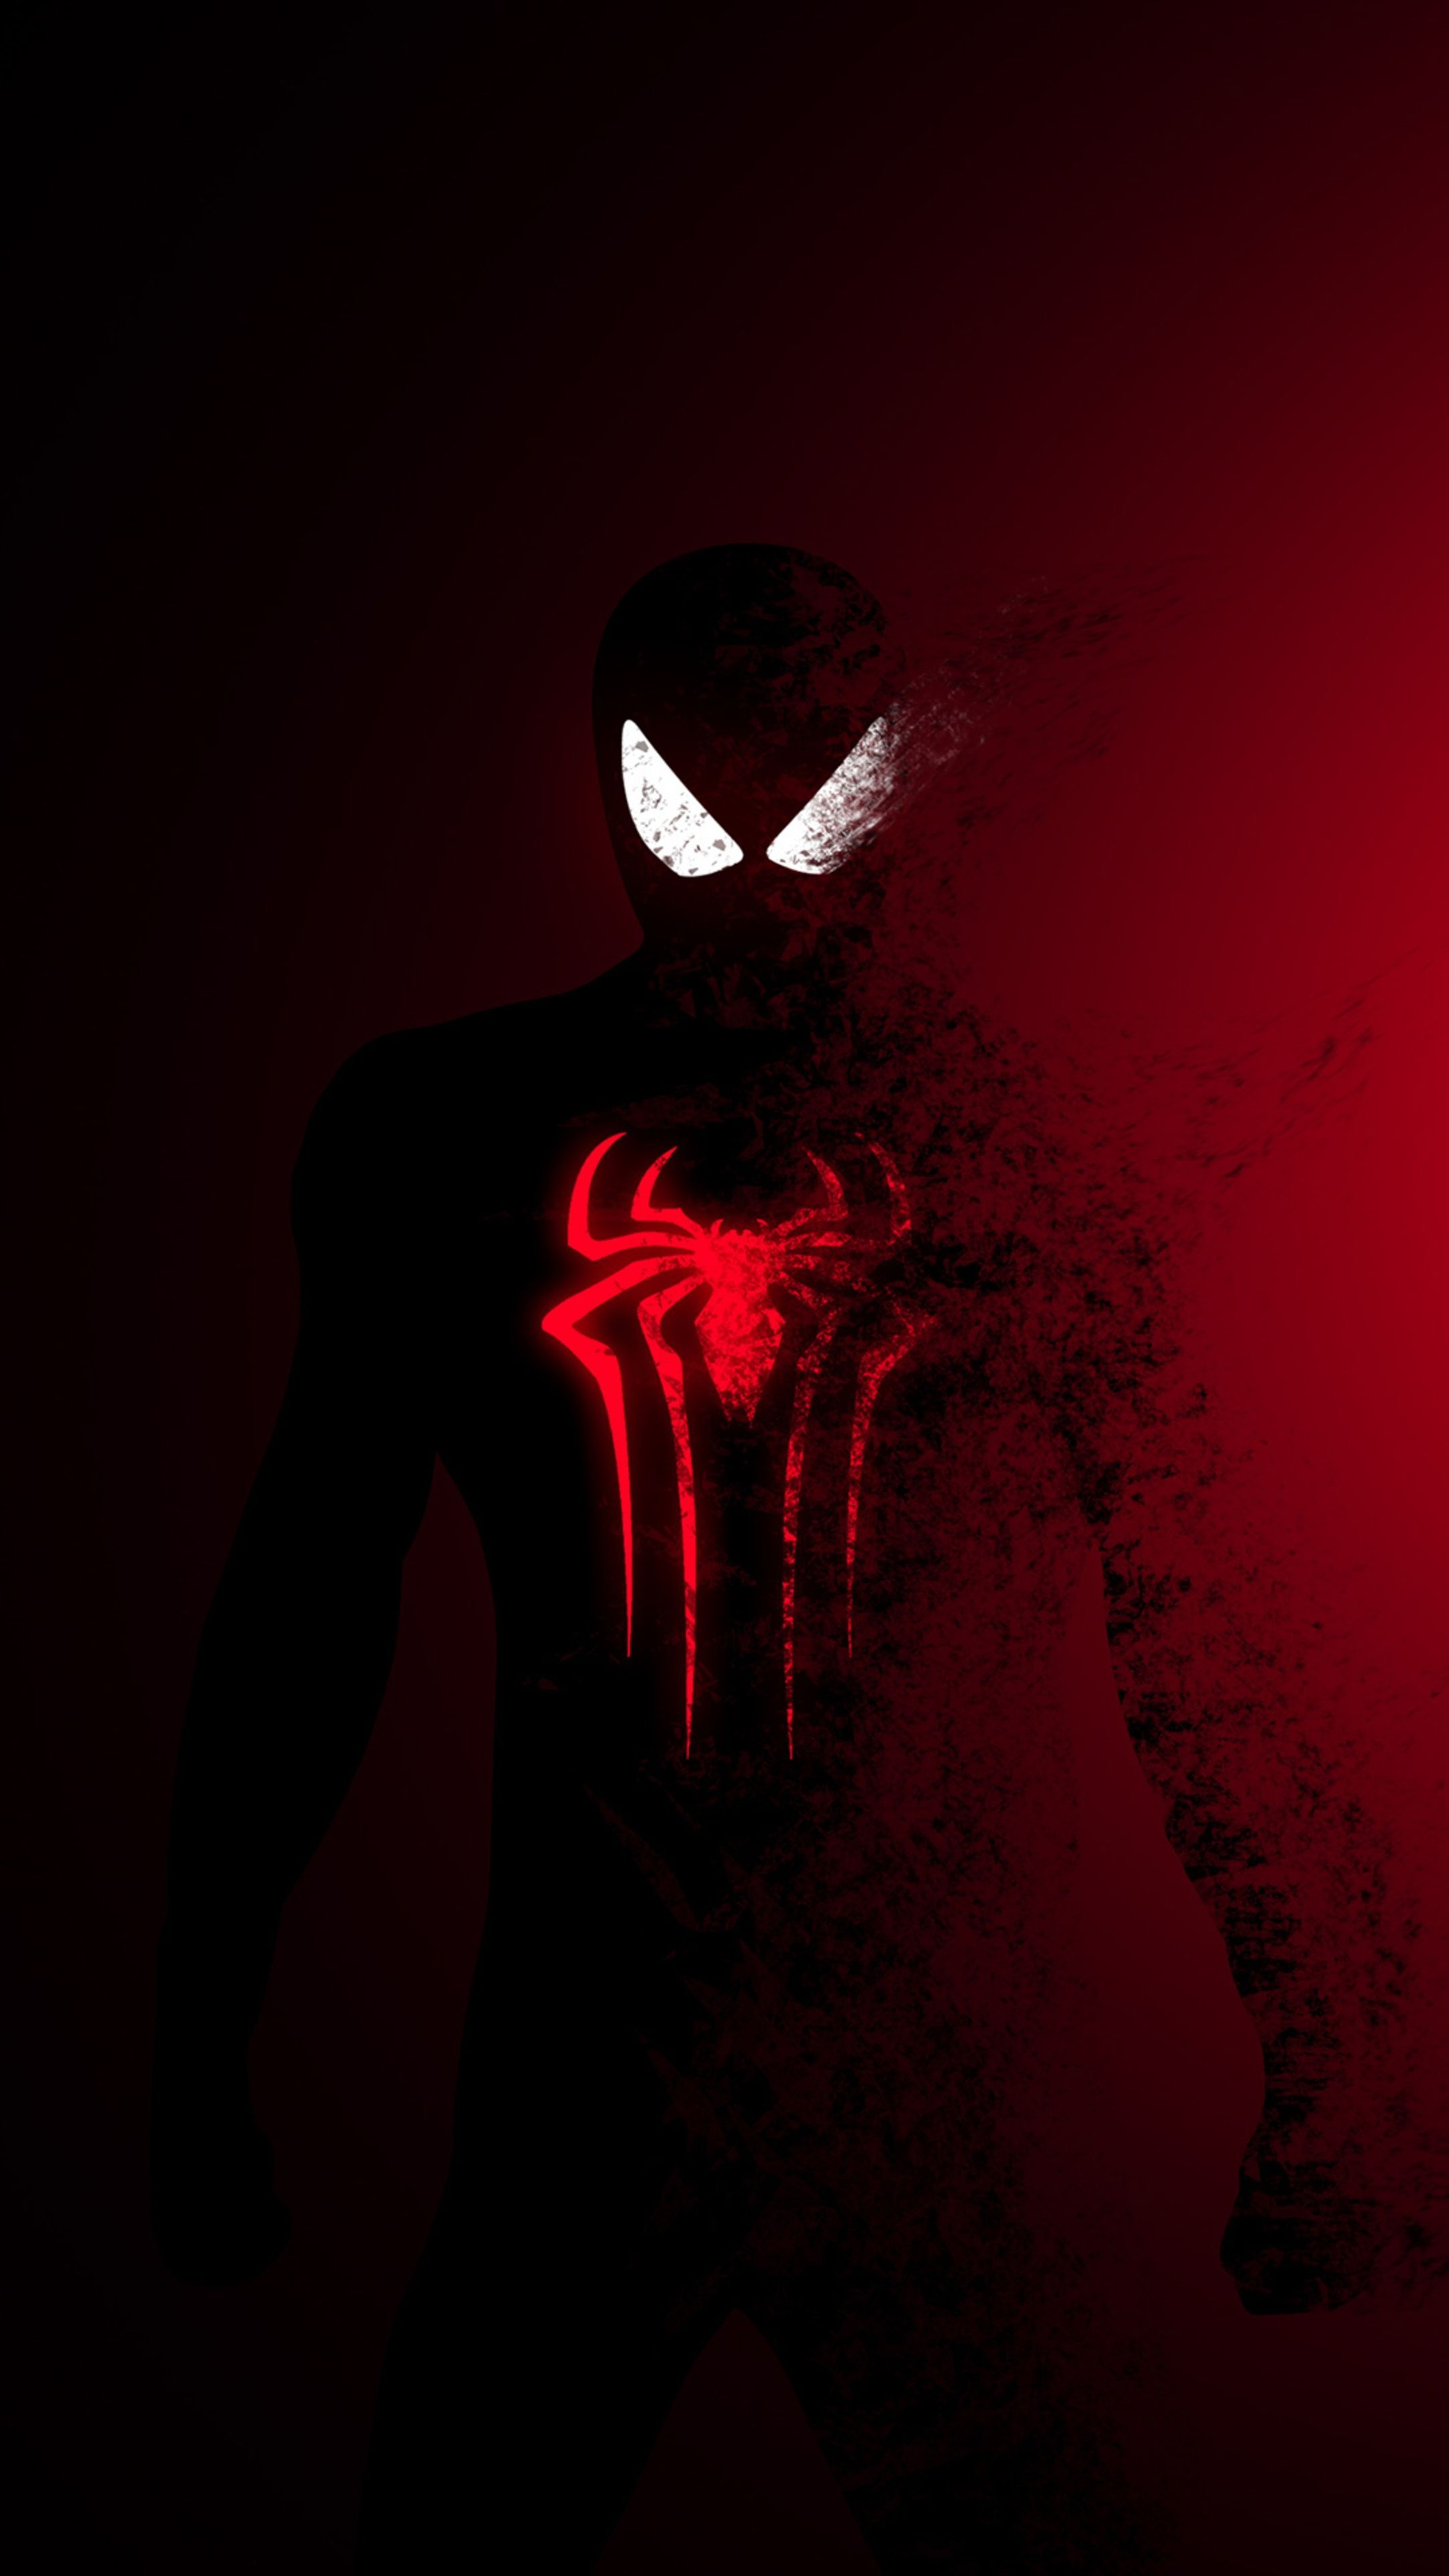 Abstract Spider Man Wallpapers Top Free Abstract Spider Man Backgrounds Wallpaperaccess